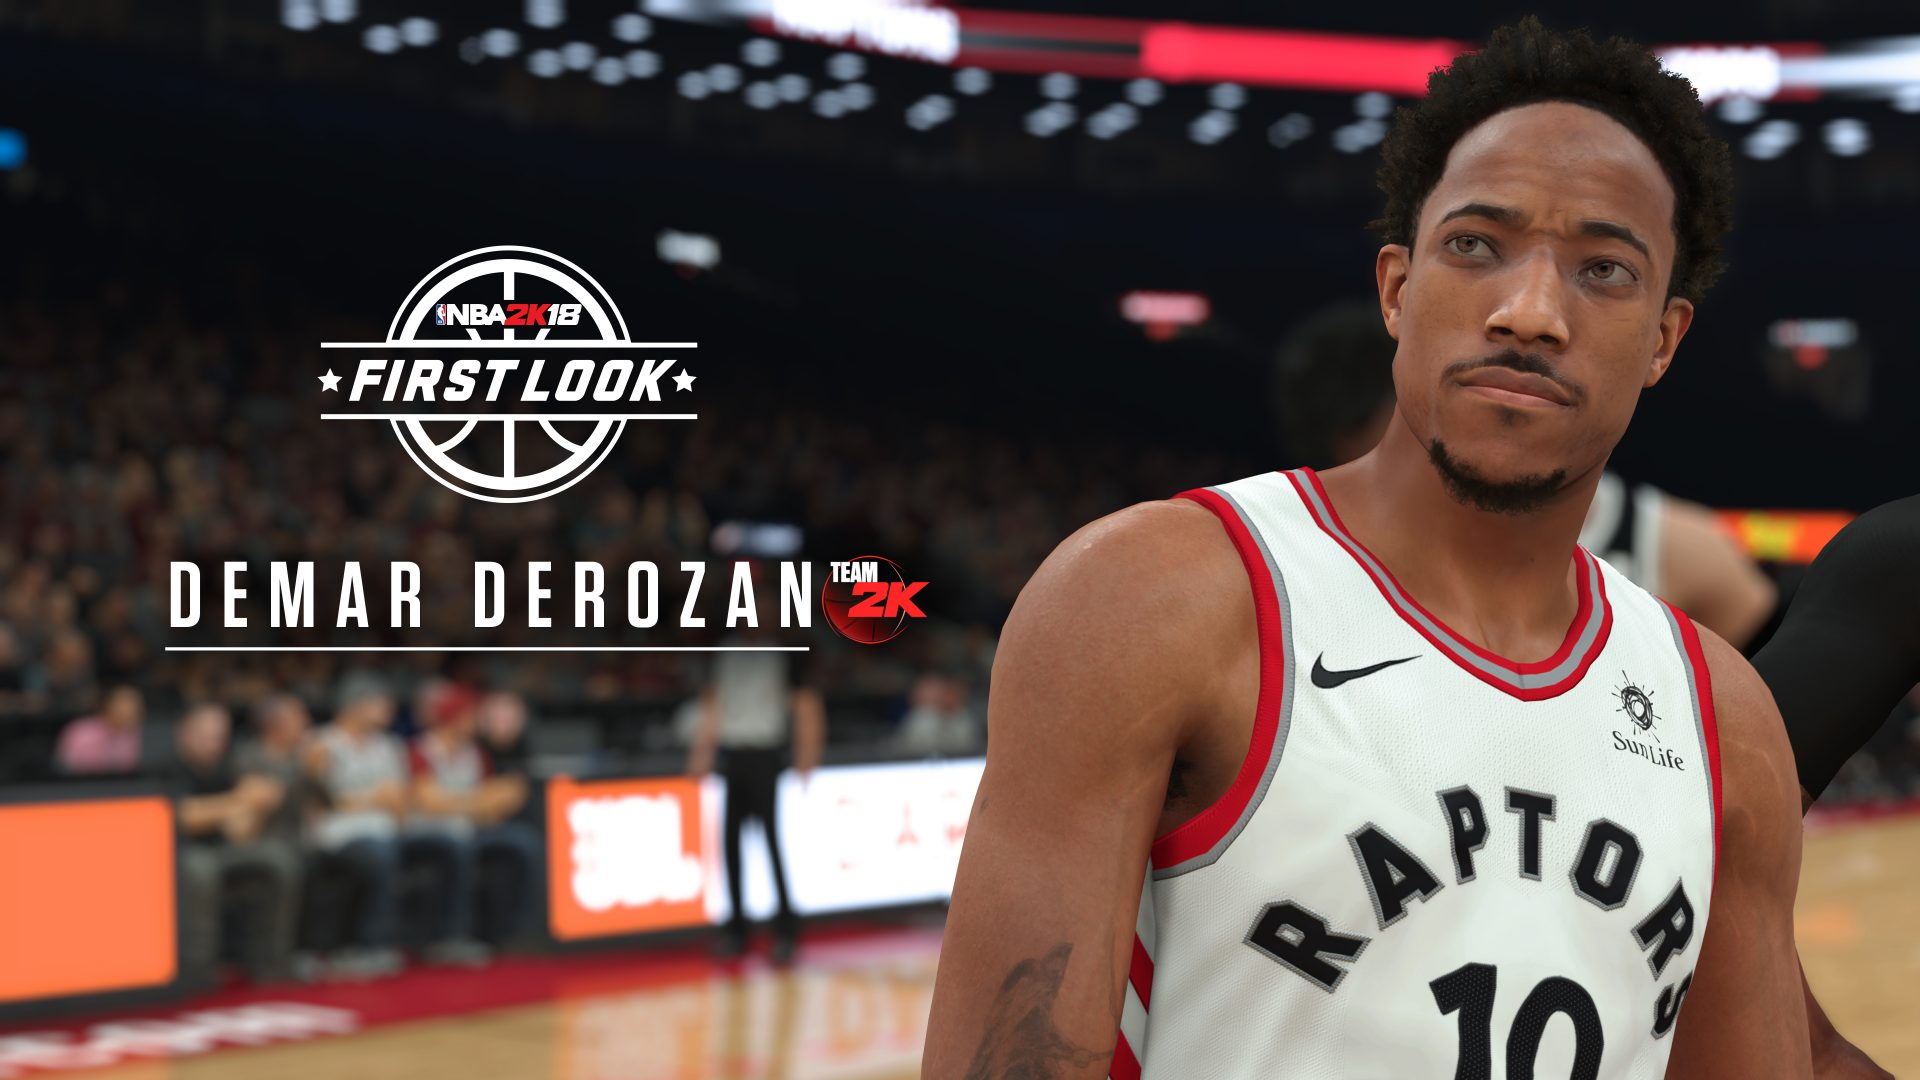 2K Releases First In-Game Screens for NBA 2K18